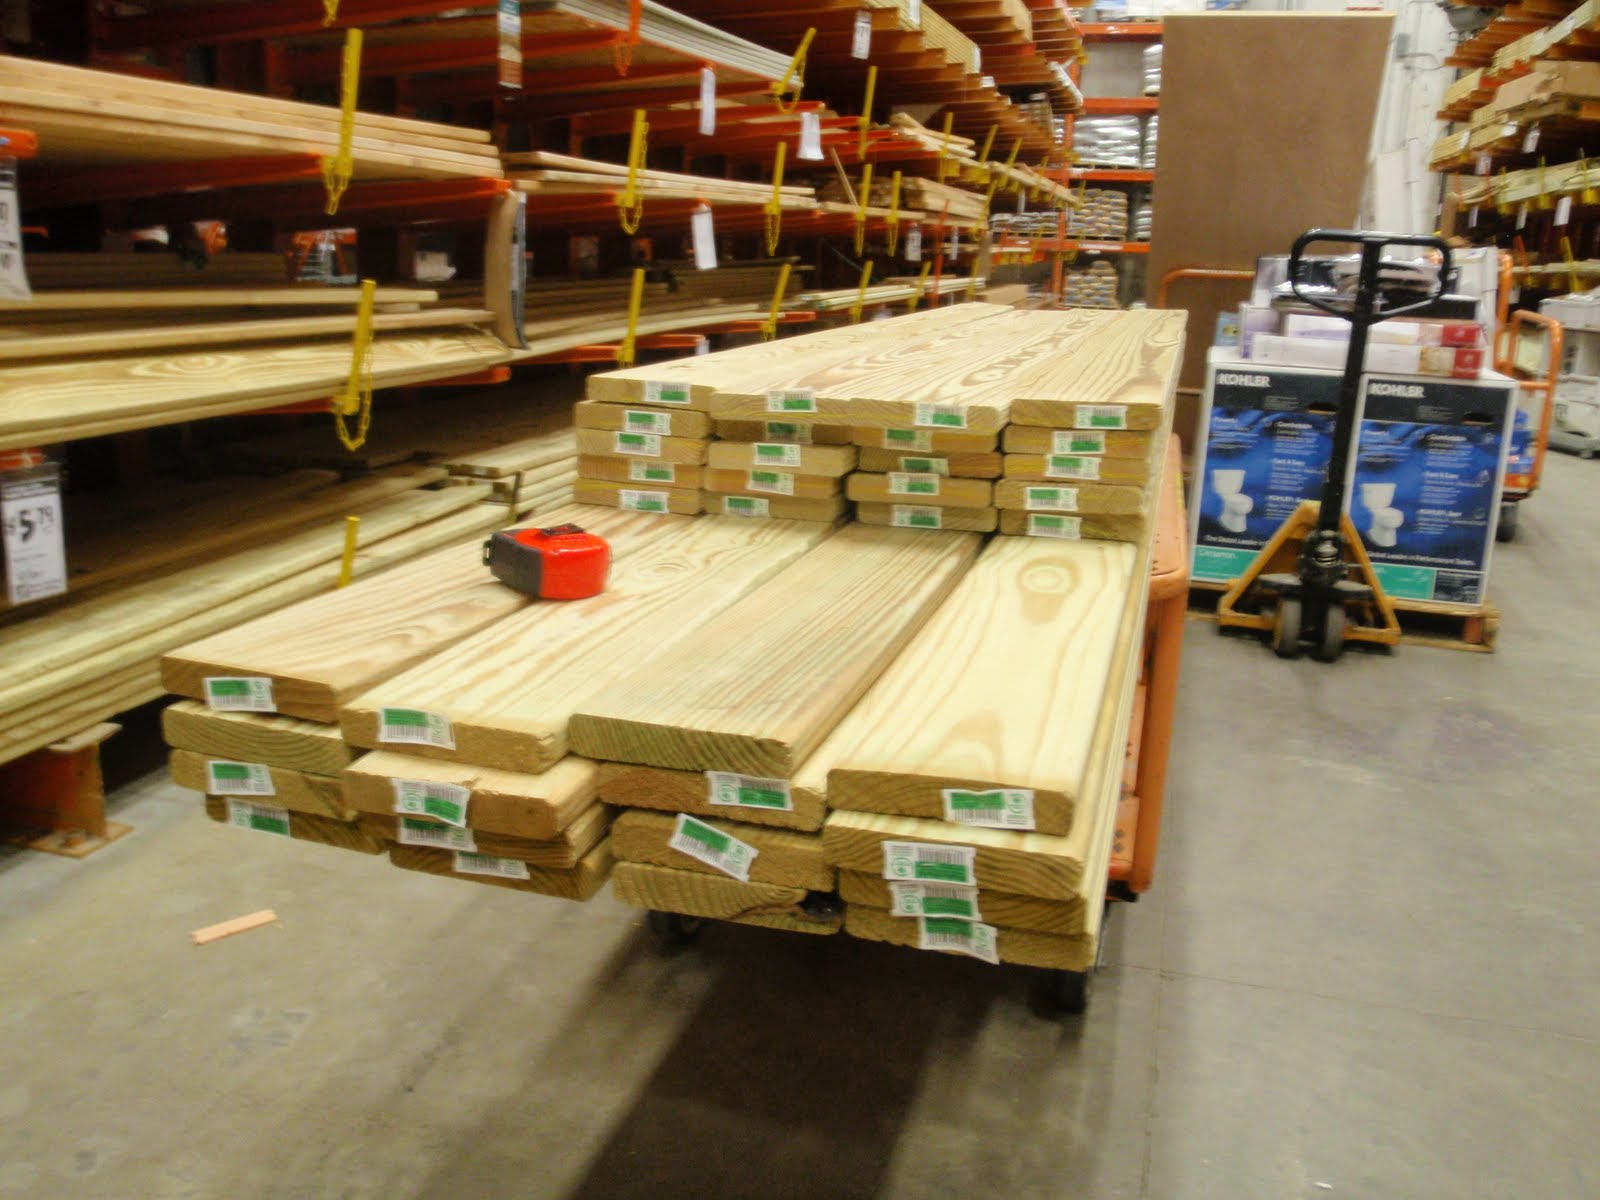 Home Depot sued for advertising 3.5 x 3.5 lumber as 4 x 4